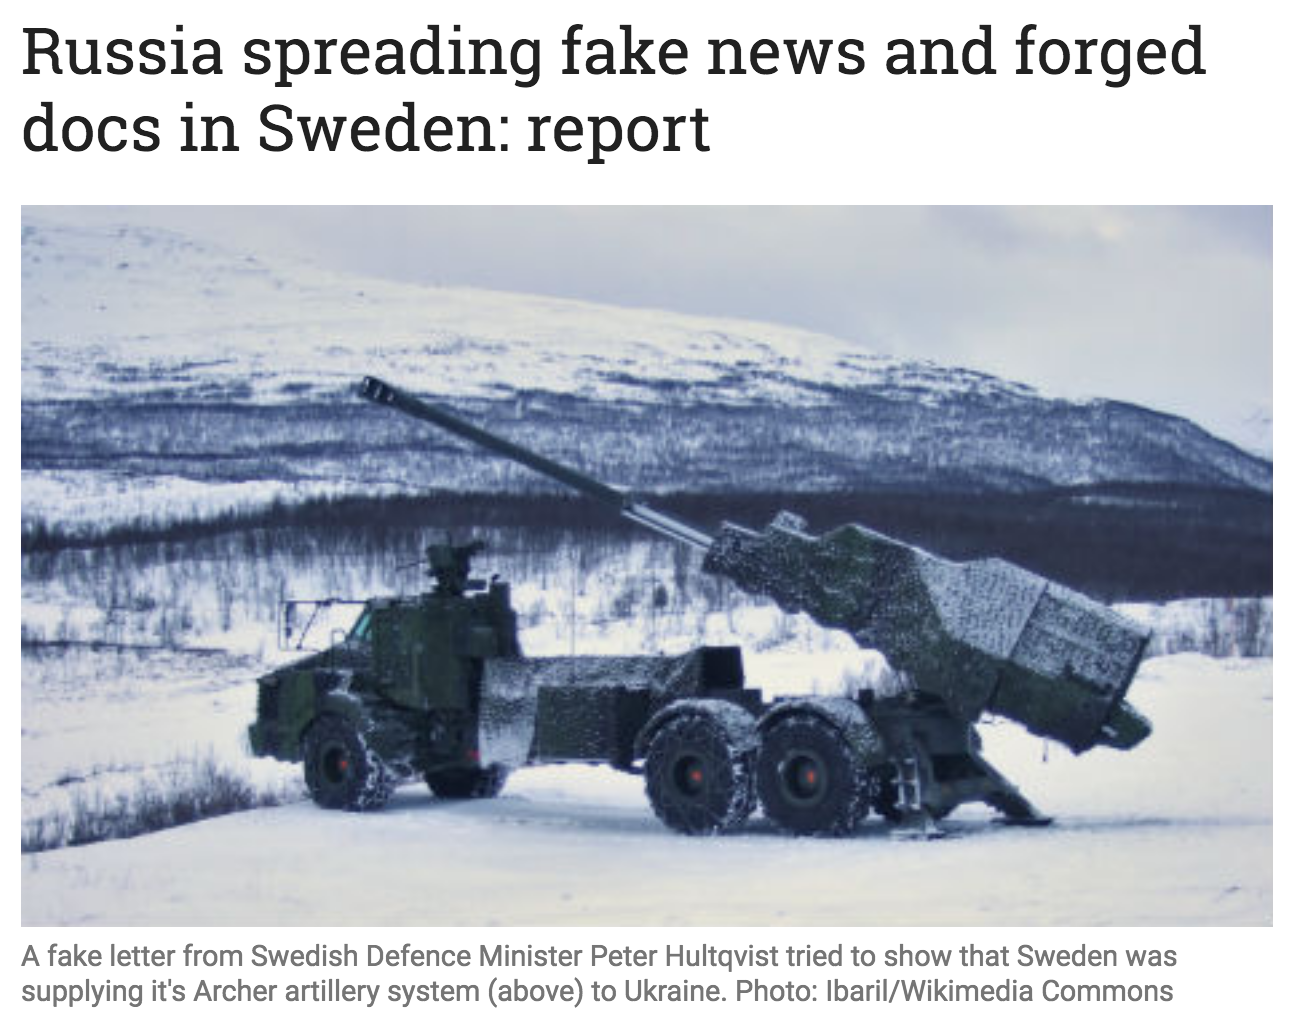 A fake letter from Swedish Defence Minister Peter Hultqvist tried to show that Sweden was supplying it's Archer artillery system (above) to Ukraine